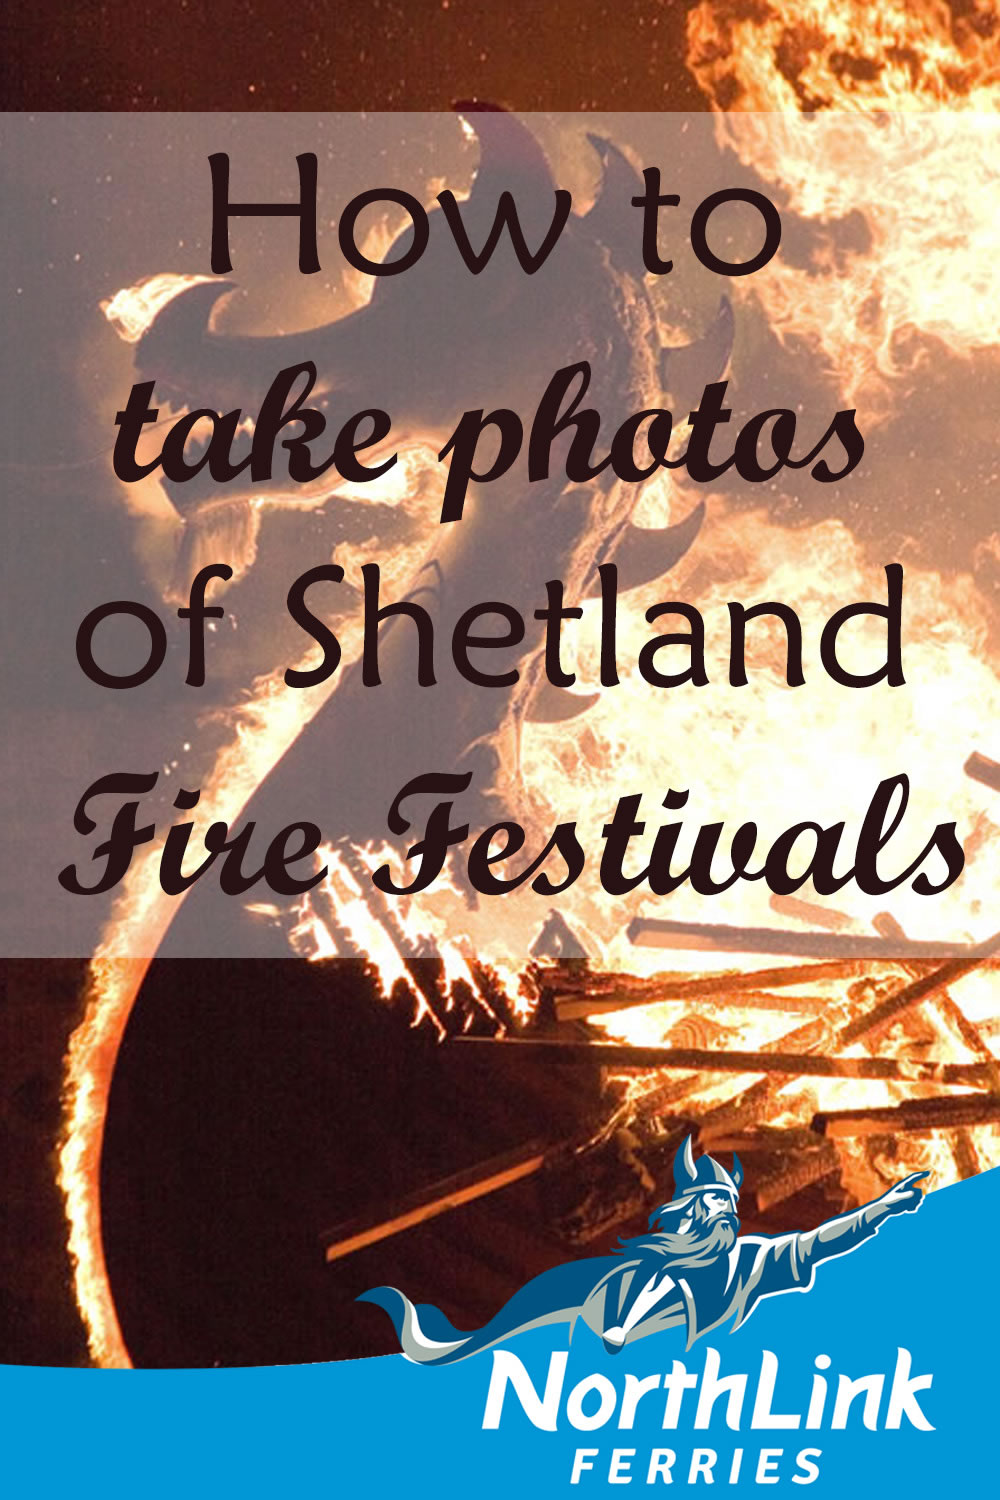 How to take photos of Shetland Fire Festivals